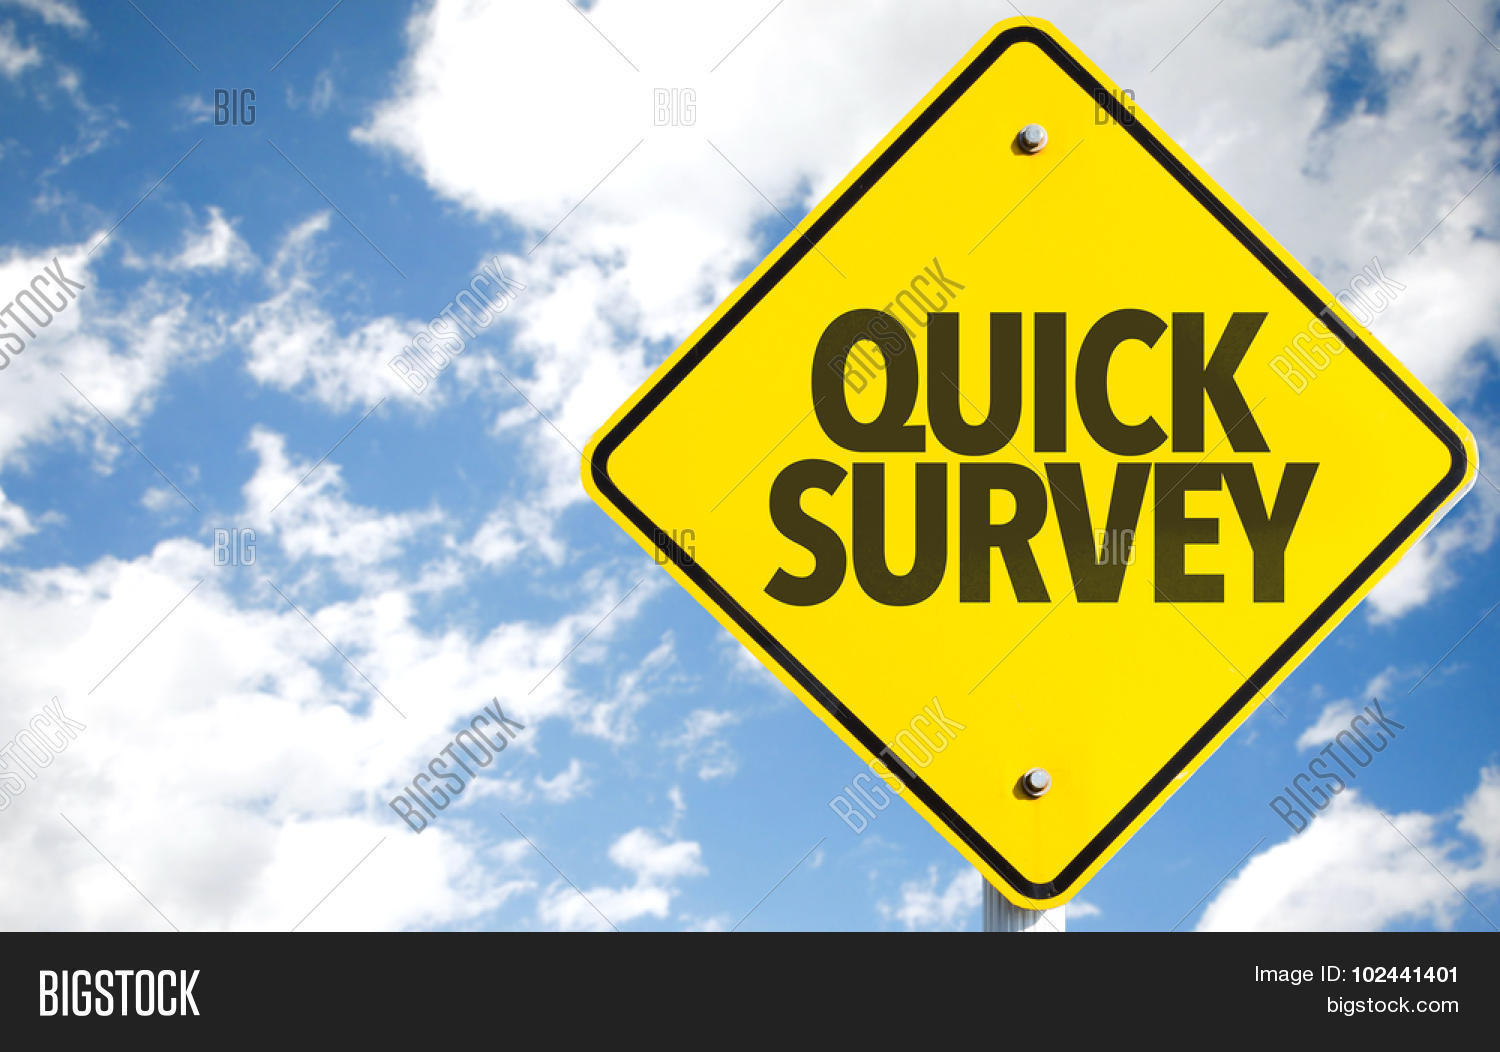 quick survey sign sky image photo free trial bigstock